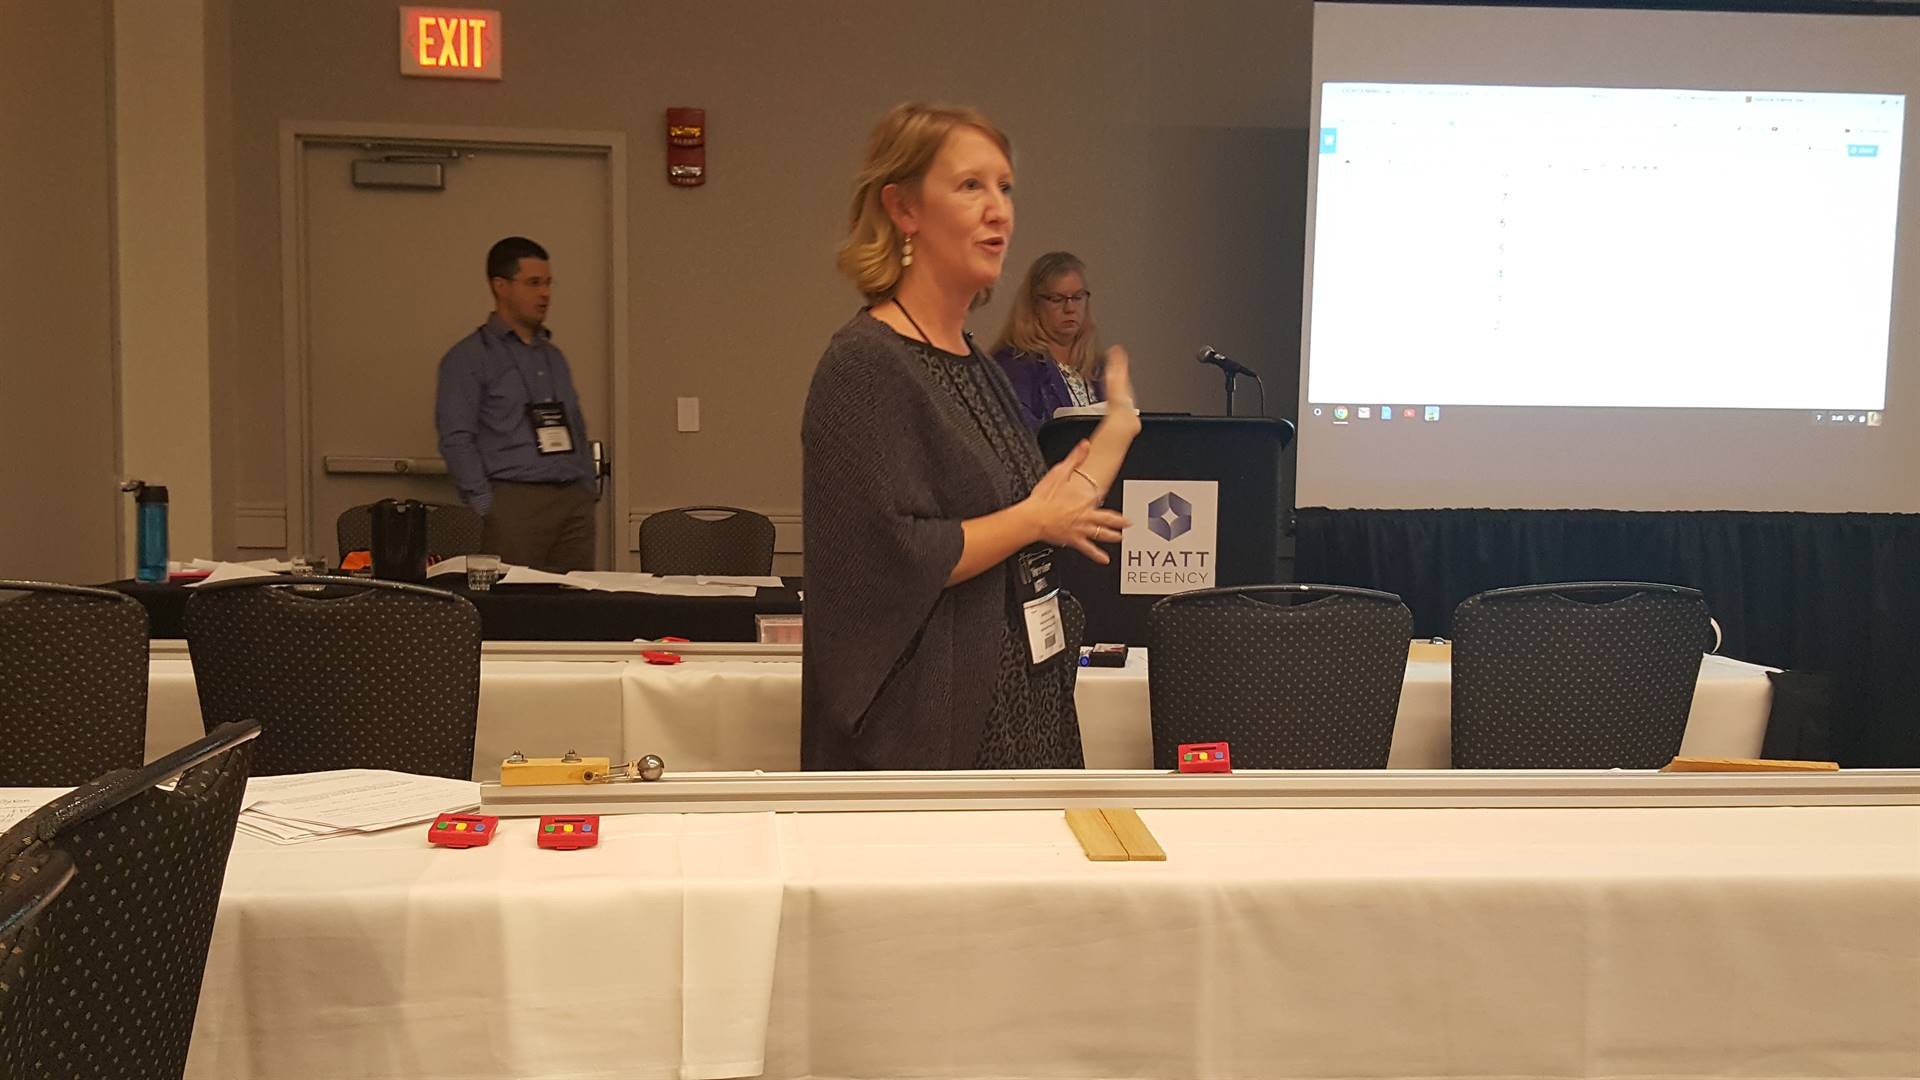 Jen Everett Presenting at a Conference